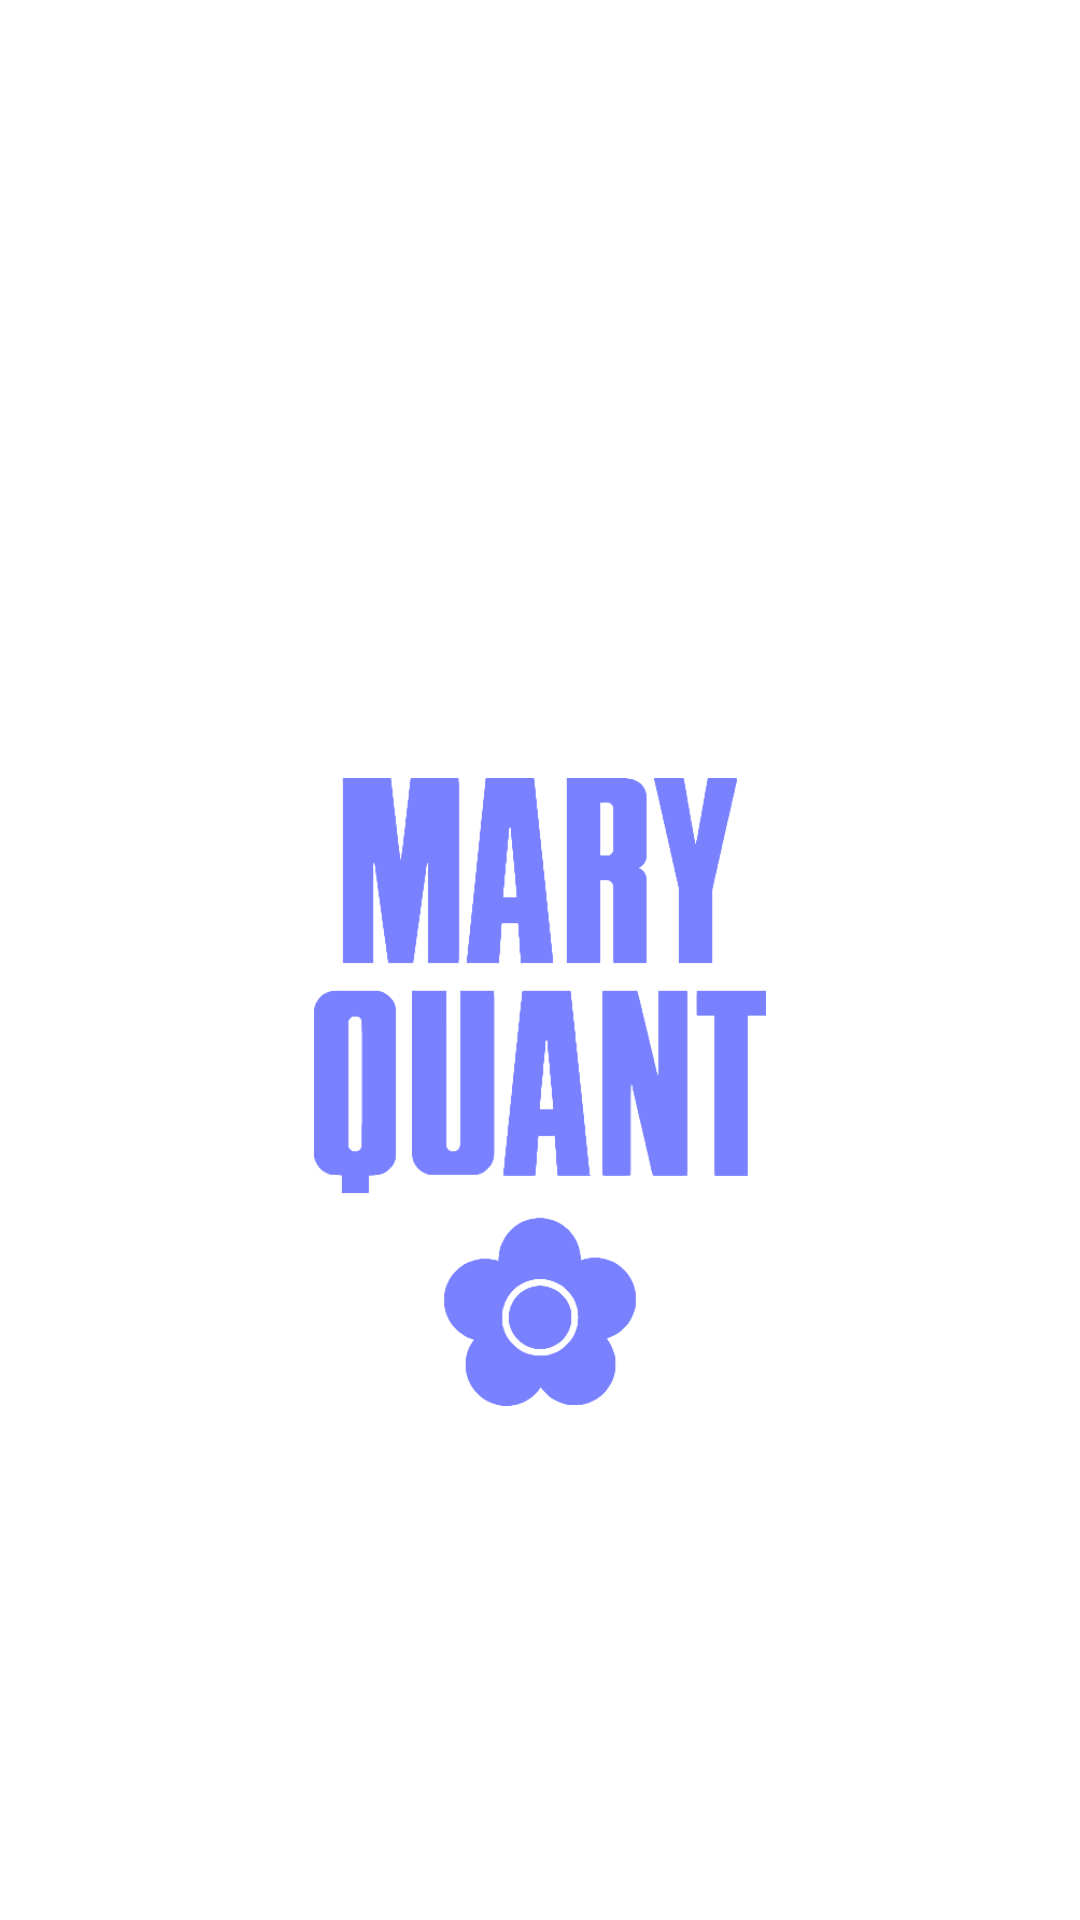 maryquant i12 - 20 MARY QUANT HQ Smartphone Wallpaper Collection